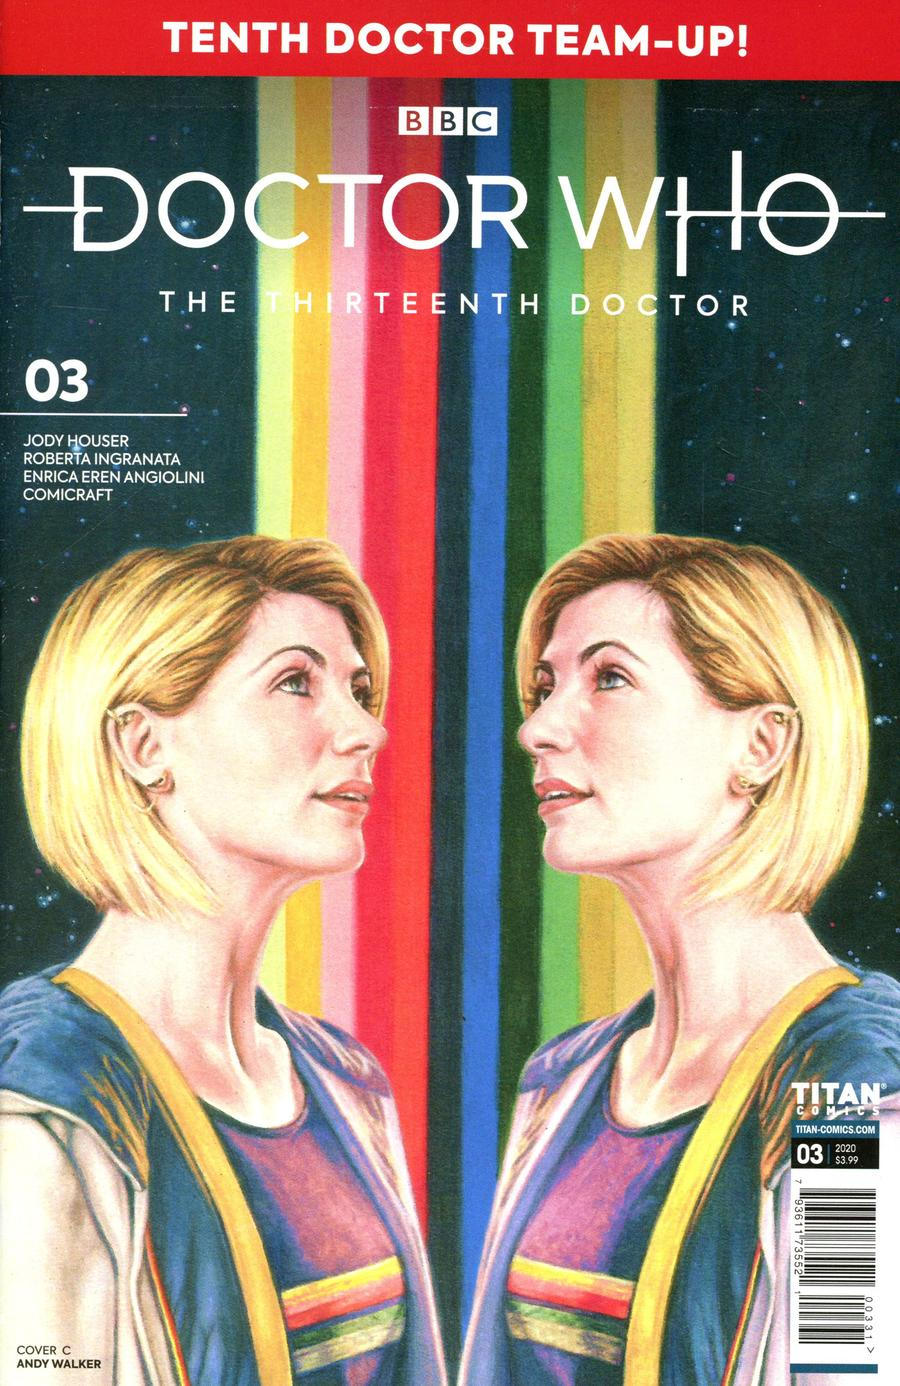 Doctor Who 13th Doctor Season 2 #3 Cover C Variant Andrew Pepoy Cover